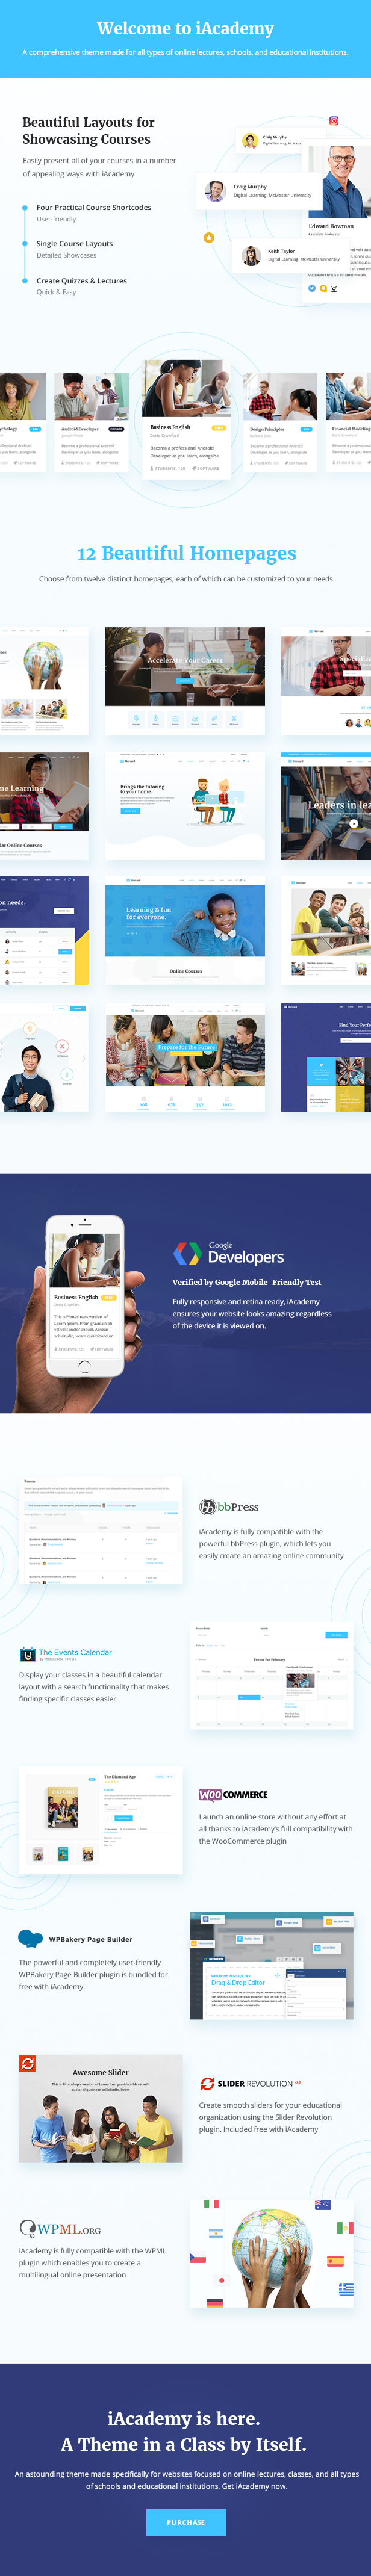 iAcademy - Education Theme for Online Learning - 1